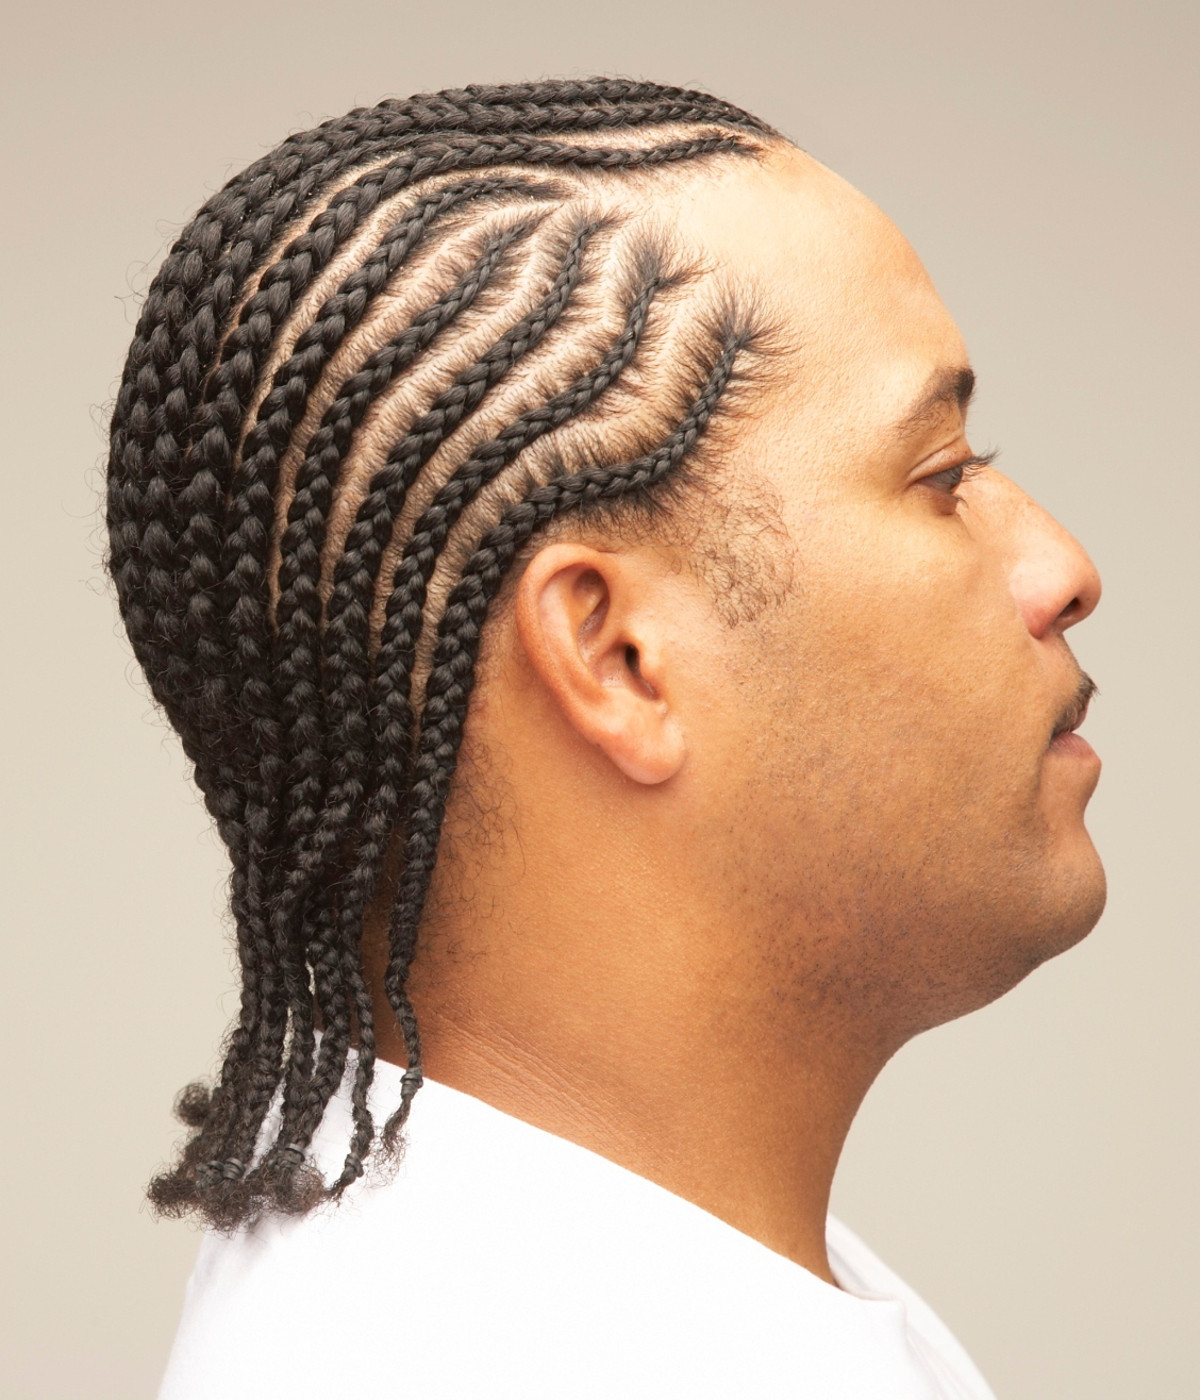 Male Braids Hairstyles  Braided Hairstyles for Men That Will Catch Everyone s Eye